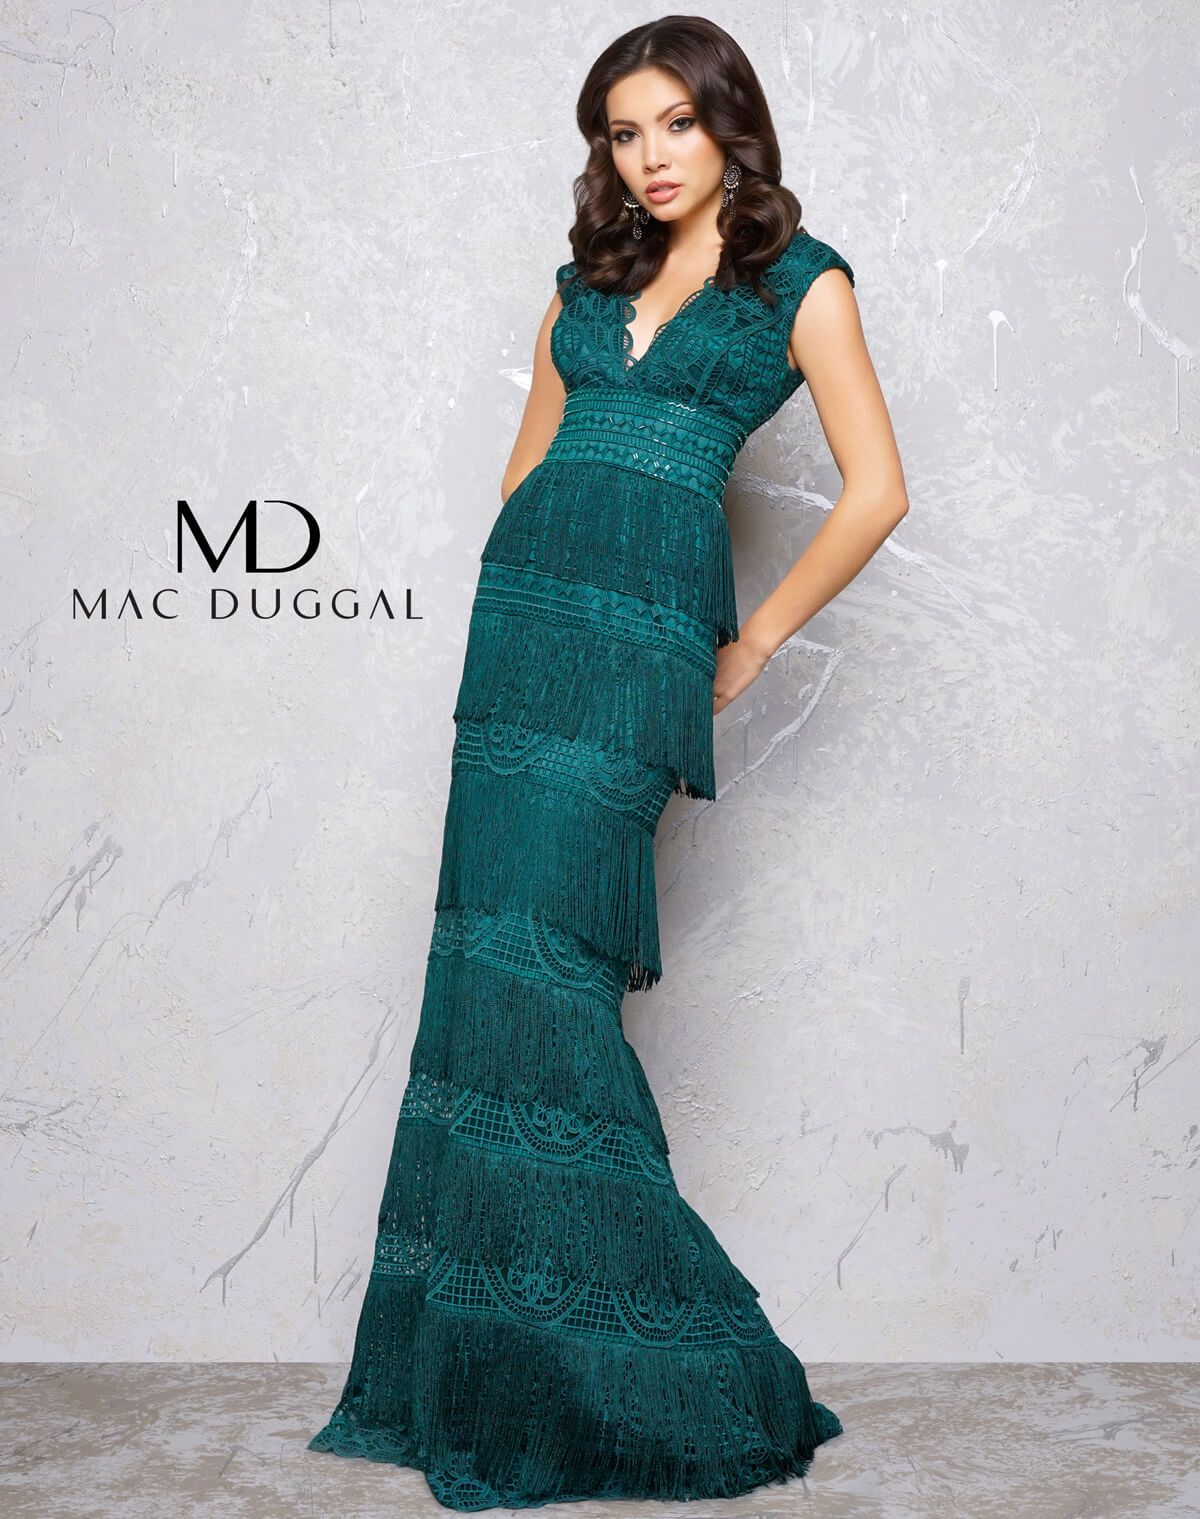 c77fb0cf1f Pagent Dresses. Prom Dress. Create movement with every step you take in  this Mac Duggal evening gown. This couture